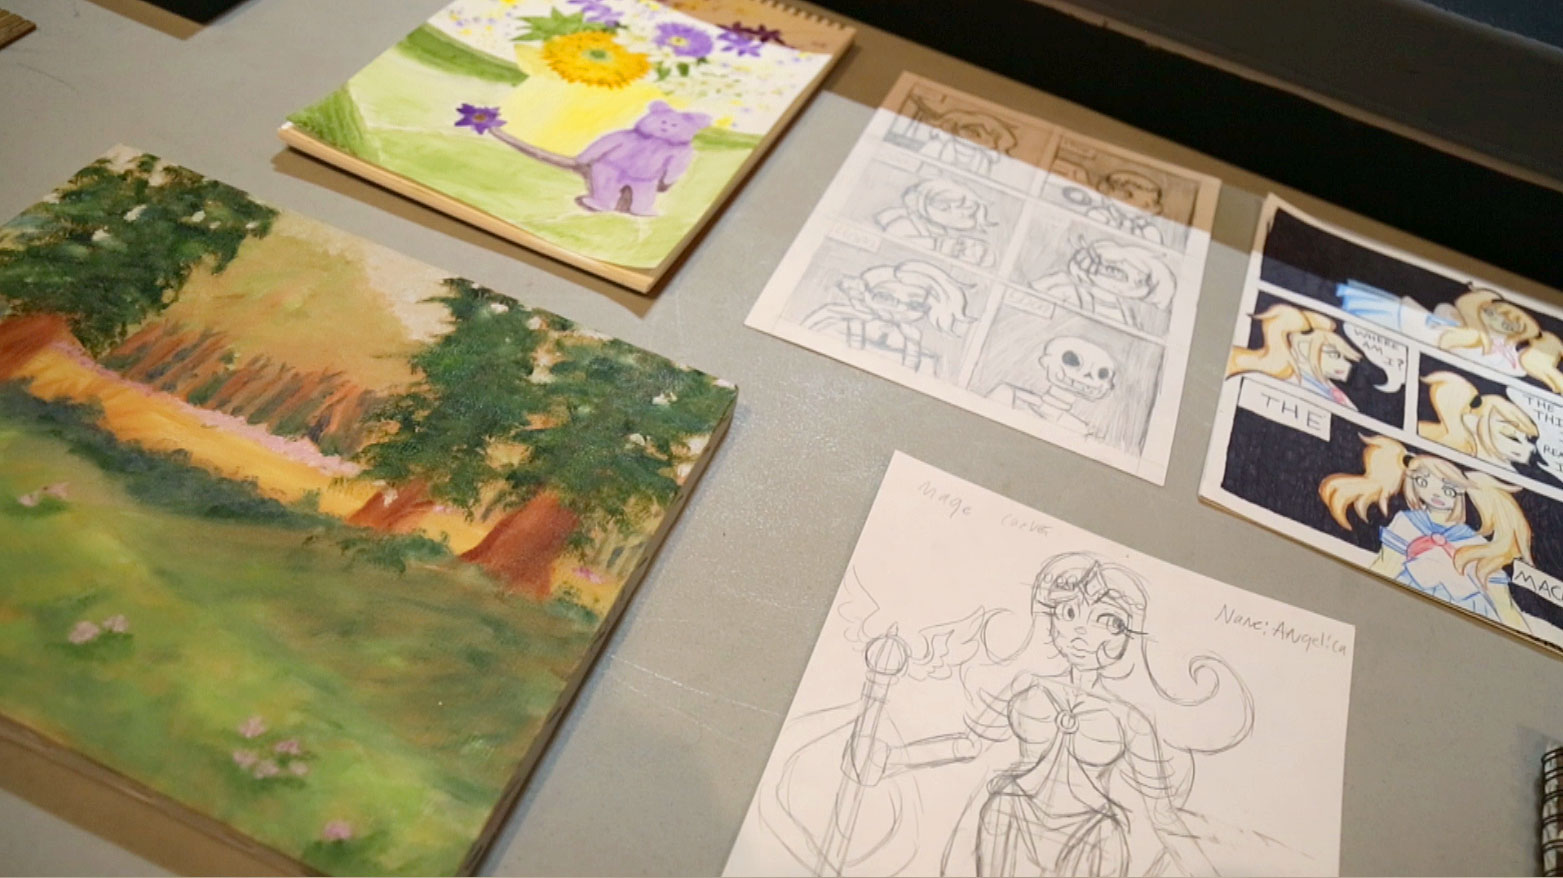 Pieces of student artwork are shown